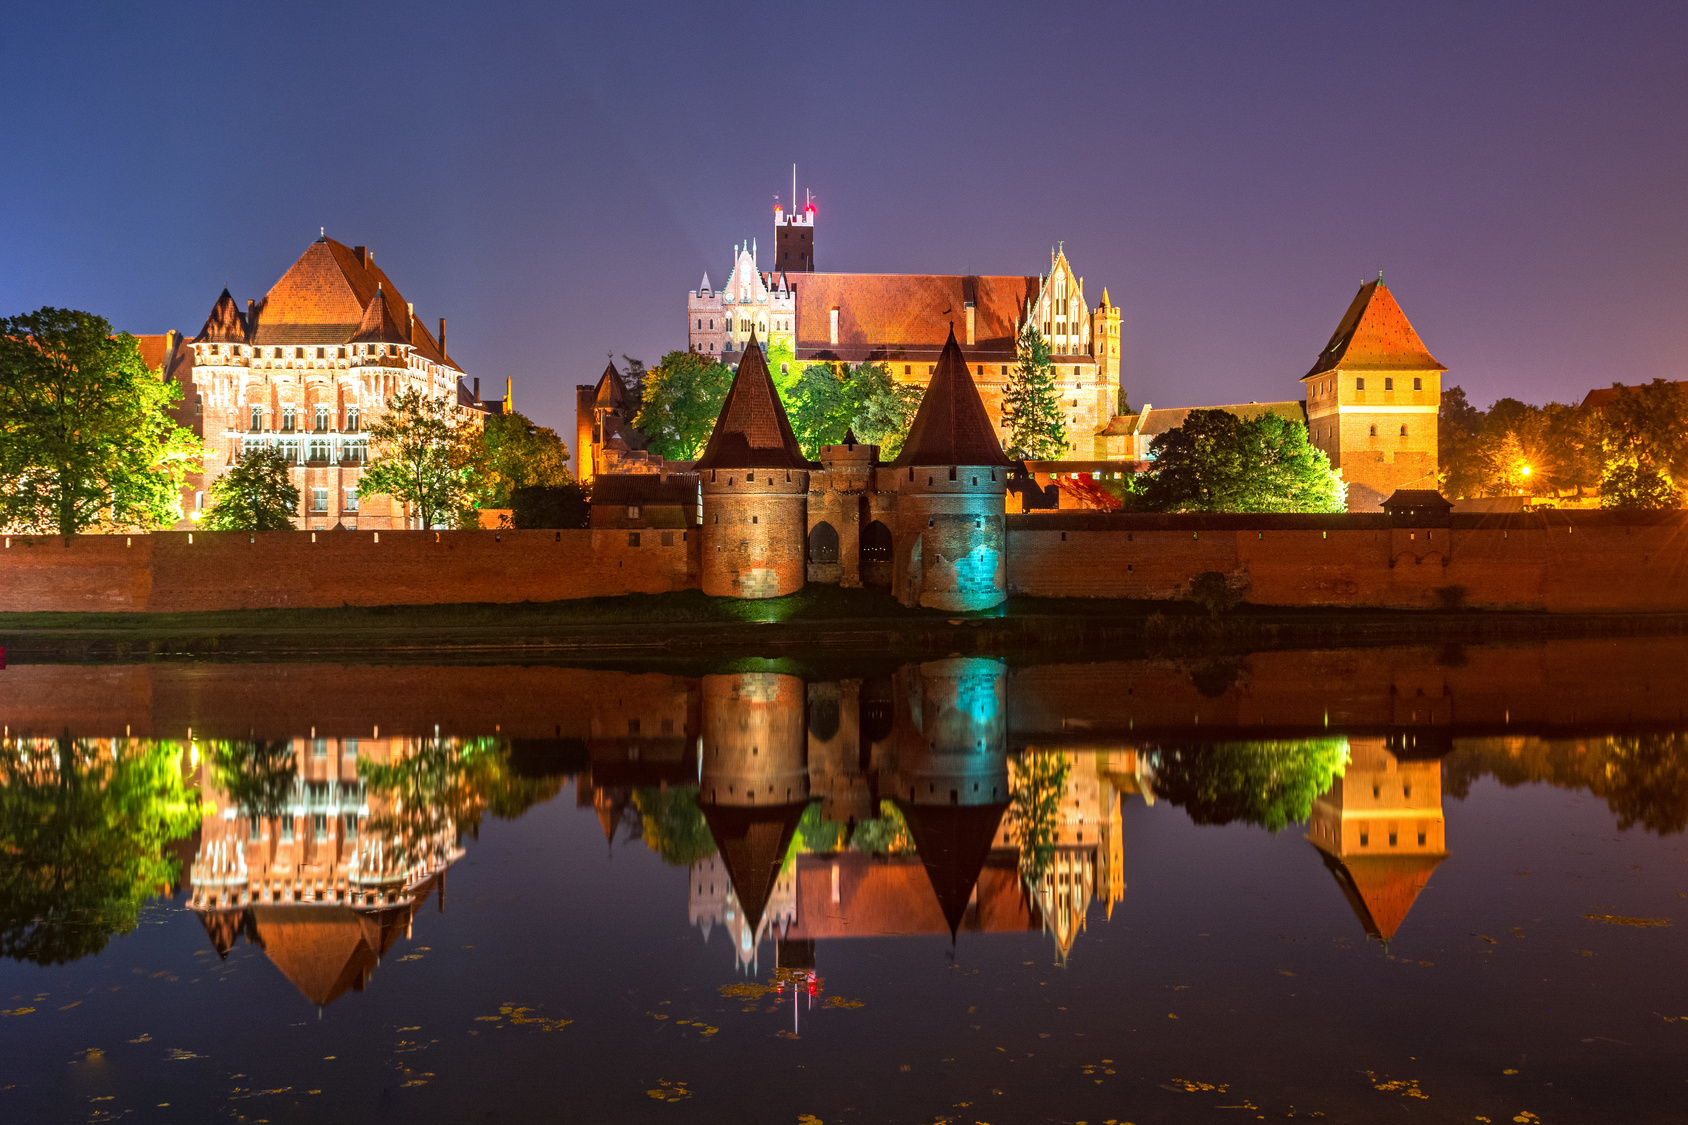 Malbork Castle from across the Nogat river at night. Poland. Europe.